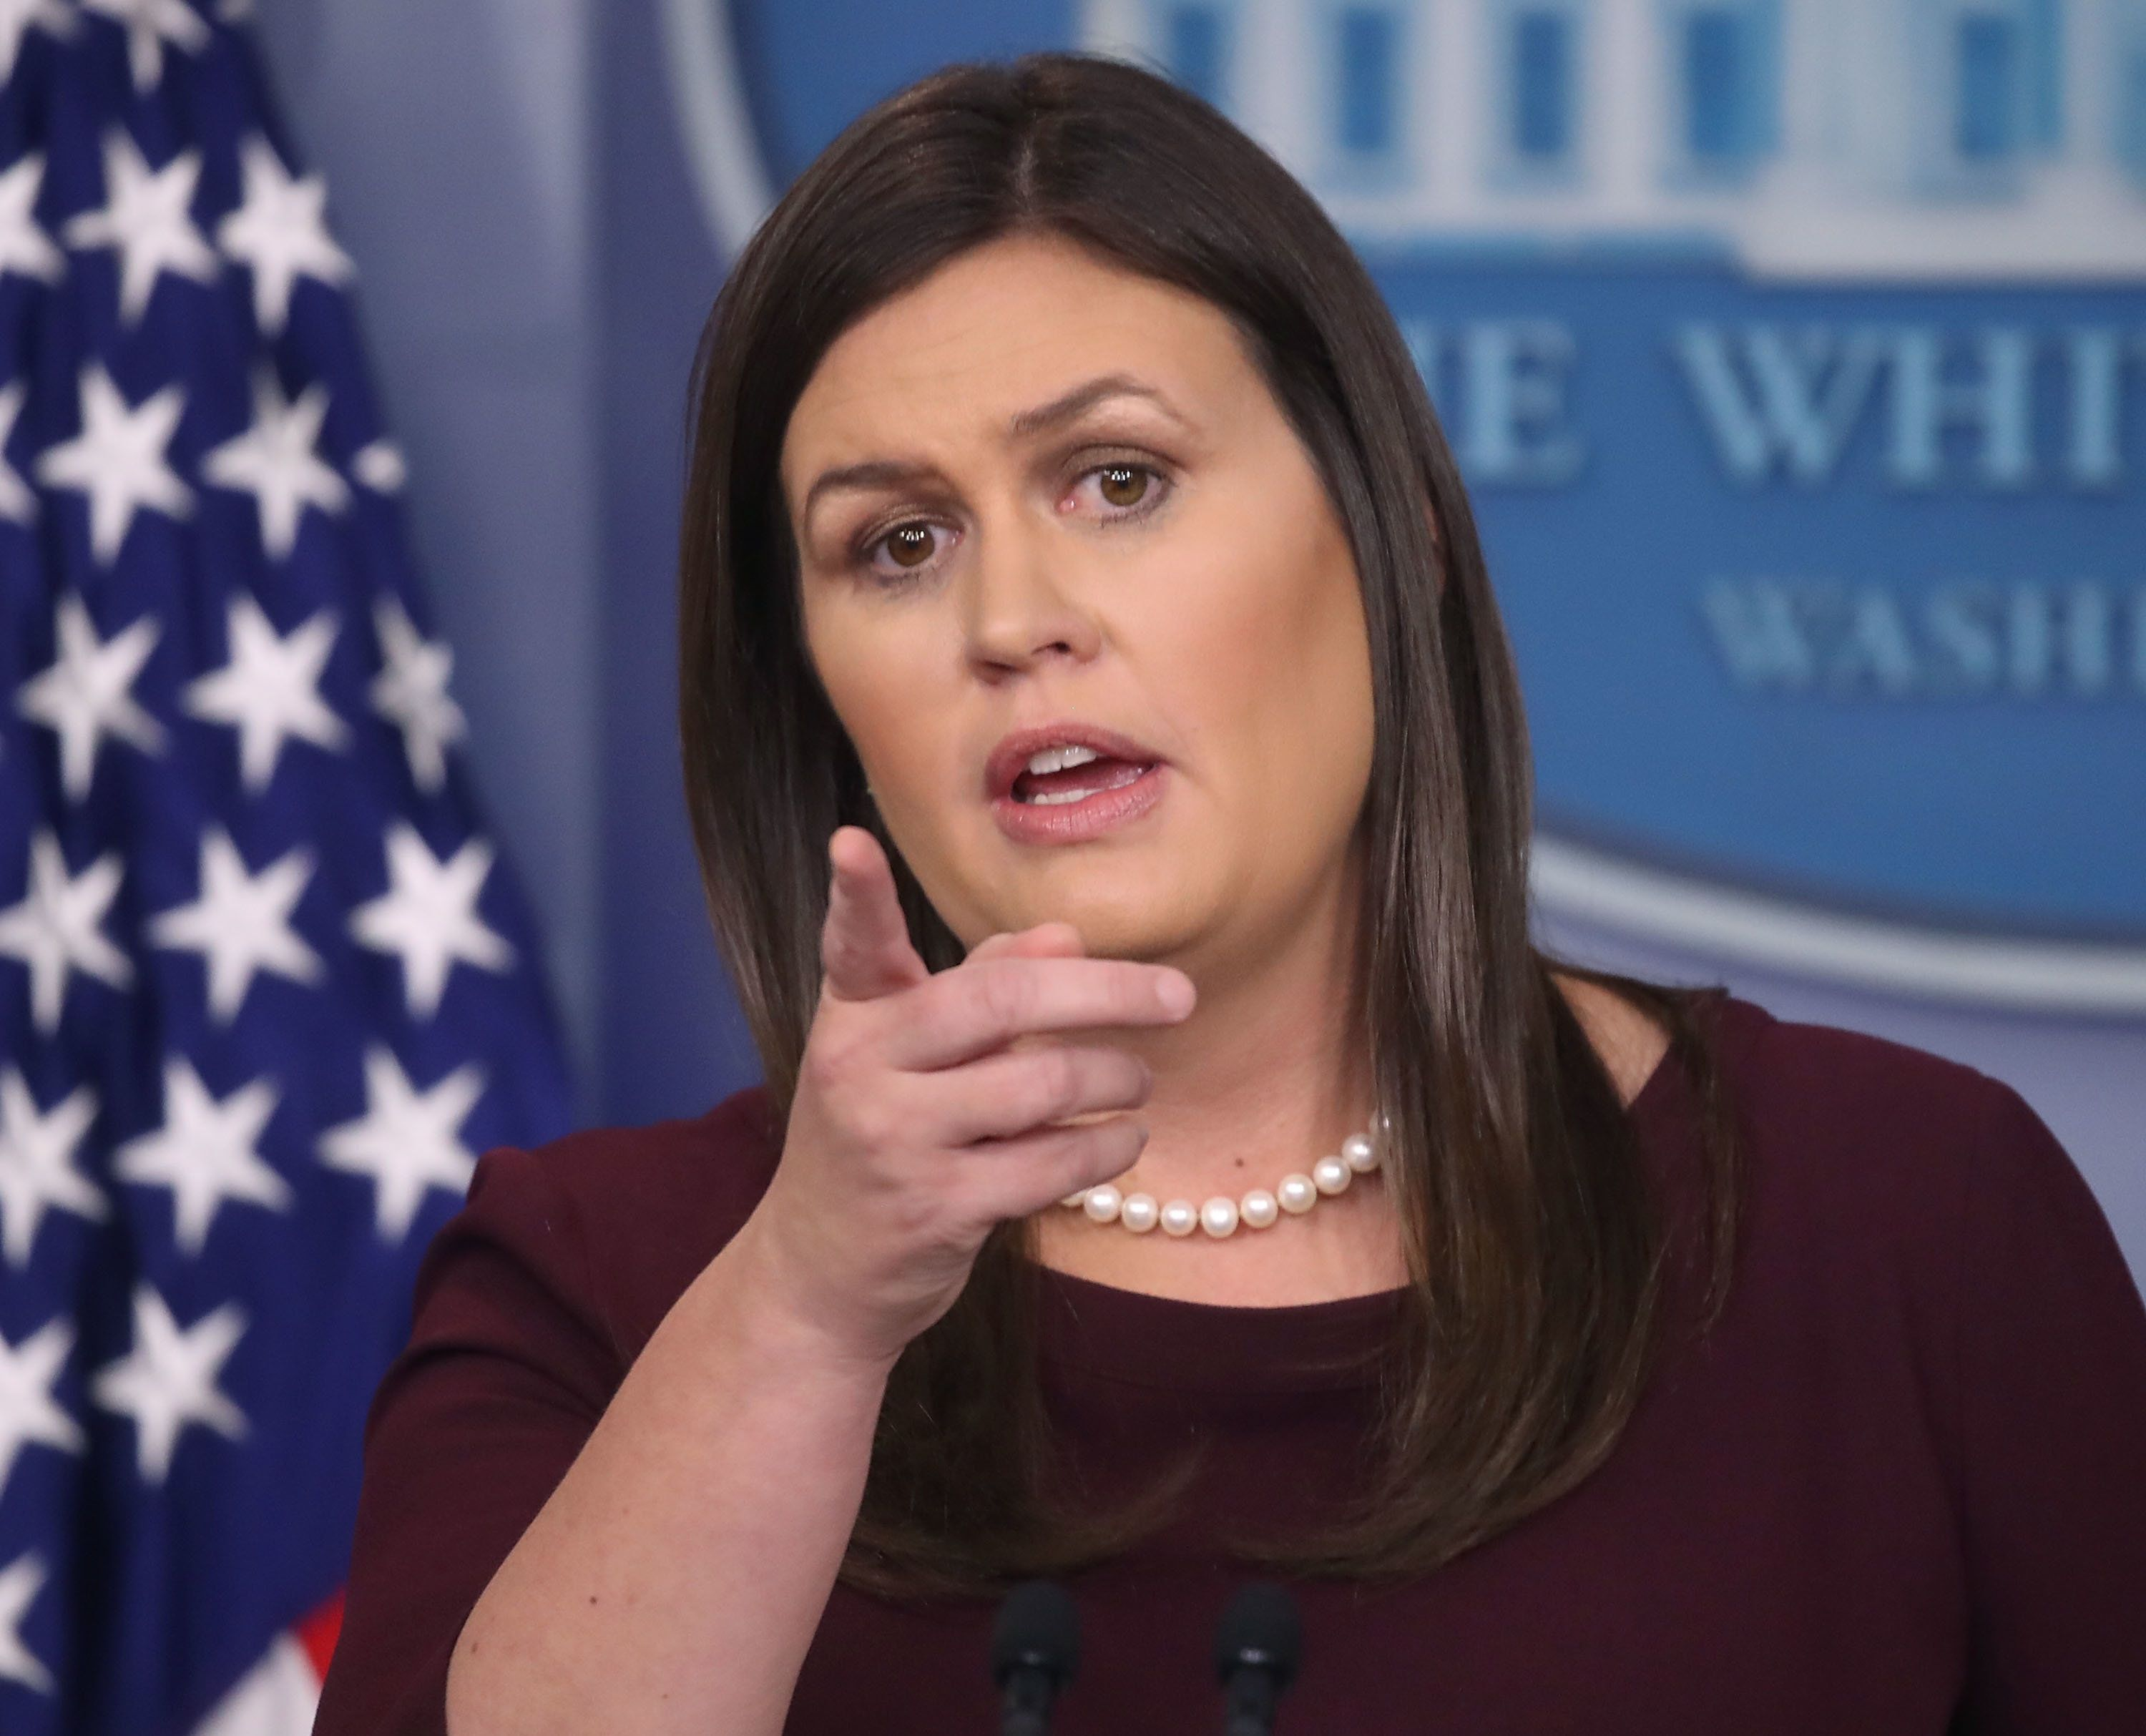 WASHINGTON, DC - AUGUST 14: White House Press Secretary Sarah Huckabee Sanders speaks to the media in the White House Briefing Room, on August 14, 2018 in Washington, DC. Sanders fielded questions on U.S. President Donald Trumps feud with fired White House advisor Omarosa Manigault Newman. (Photo by Mark Wilson/Getty Images)